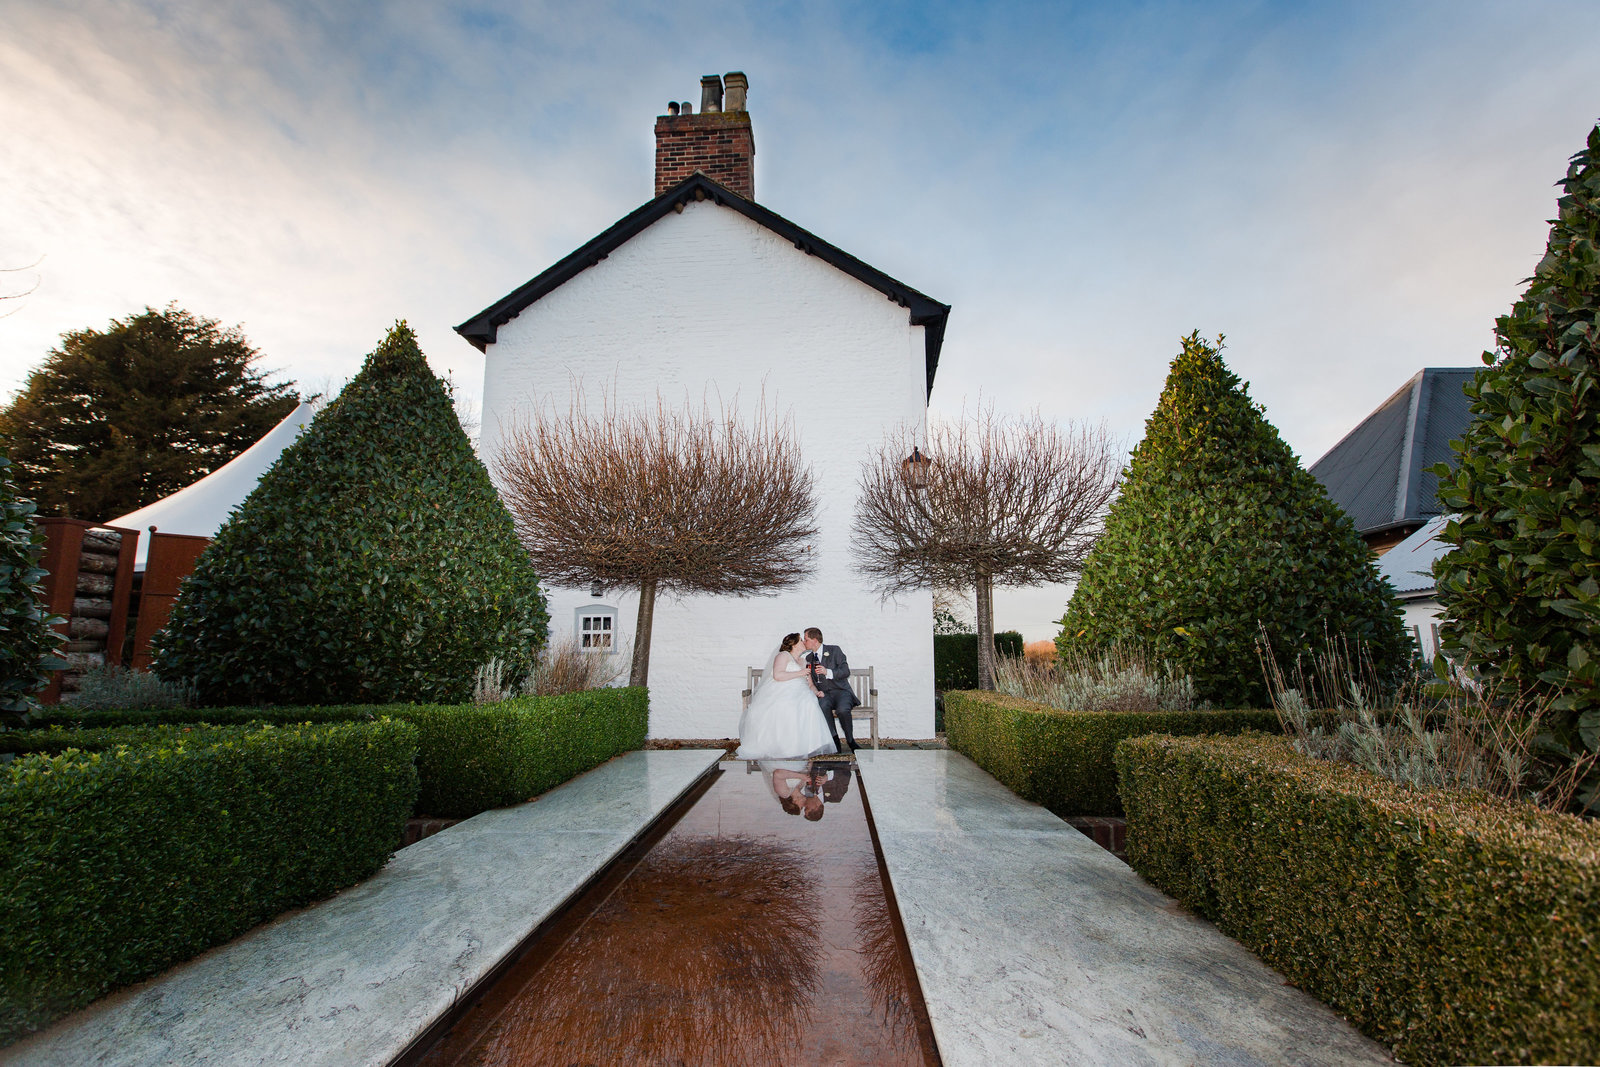 adorlee-0945-southend-barns-wedding-photographer-chichester-west-sussex